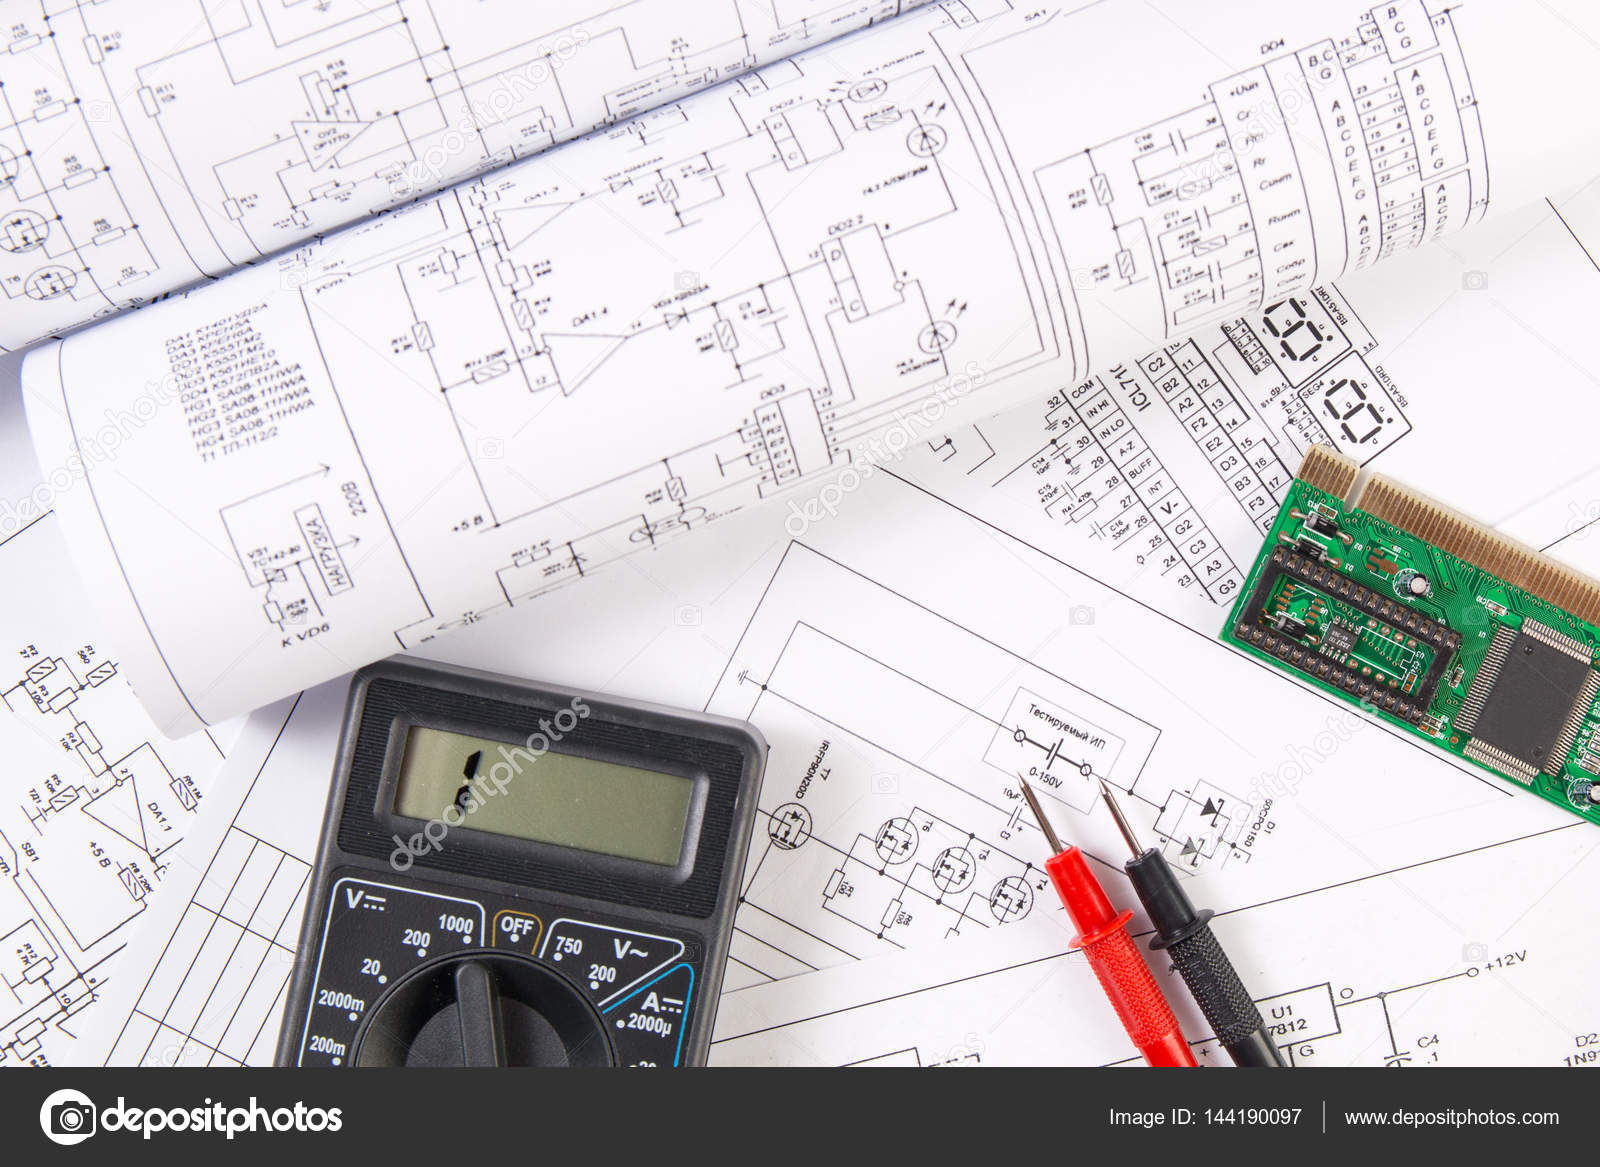 hight resolution of electrical engineering drawings electronic board and digital mu stock photo